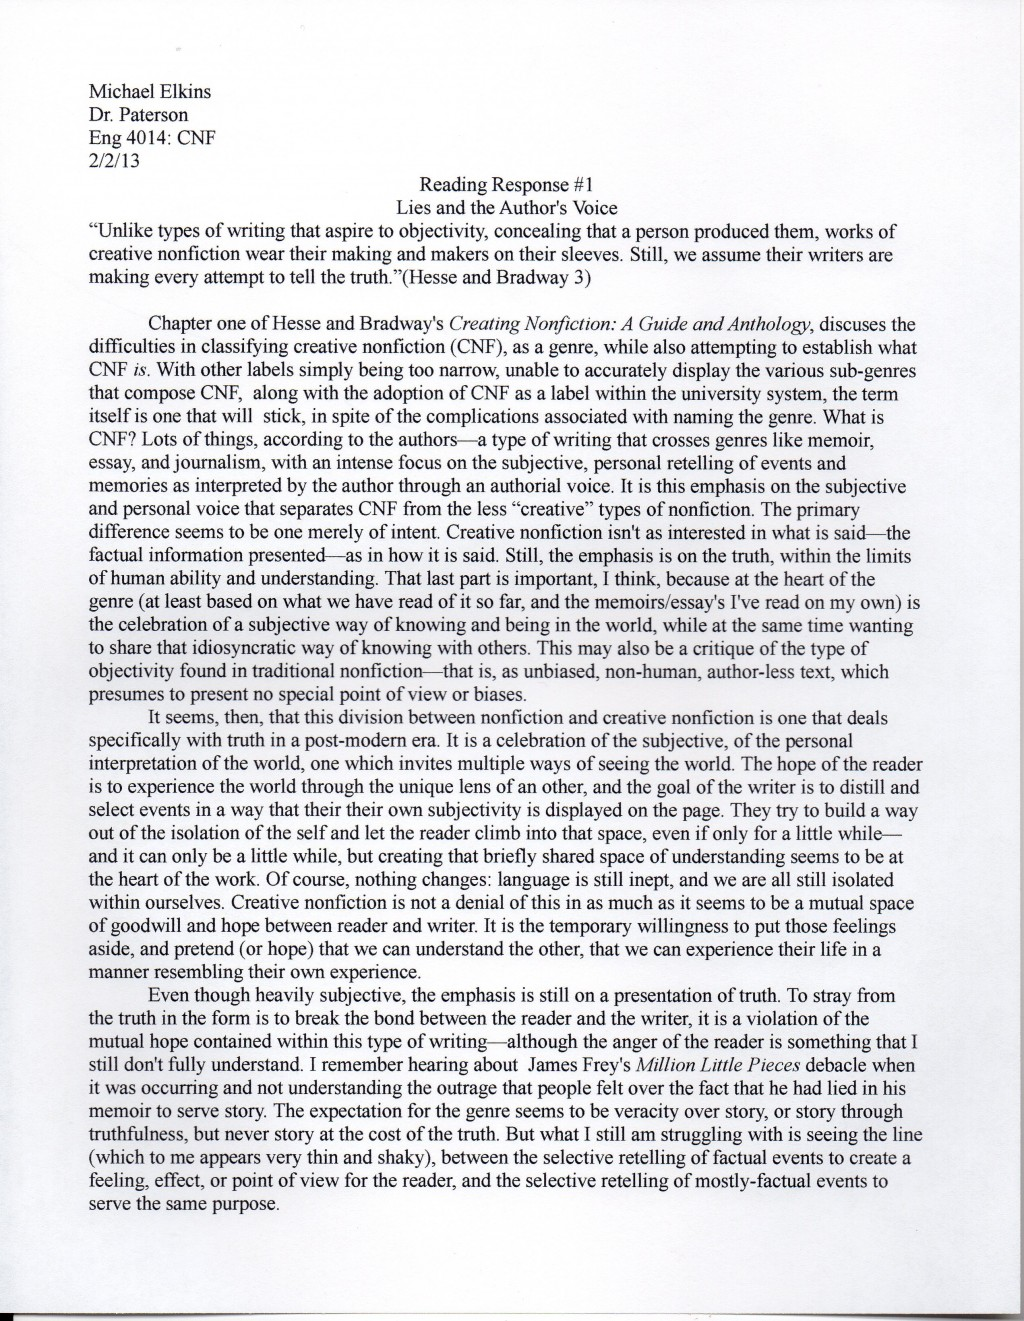 018 Essay Example How To Start Of An Breathtaking Argumentative About Yourself For Scholarship Analysis On A Book Large